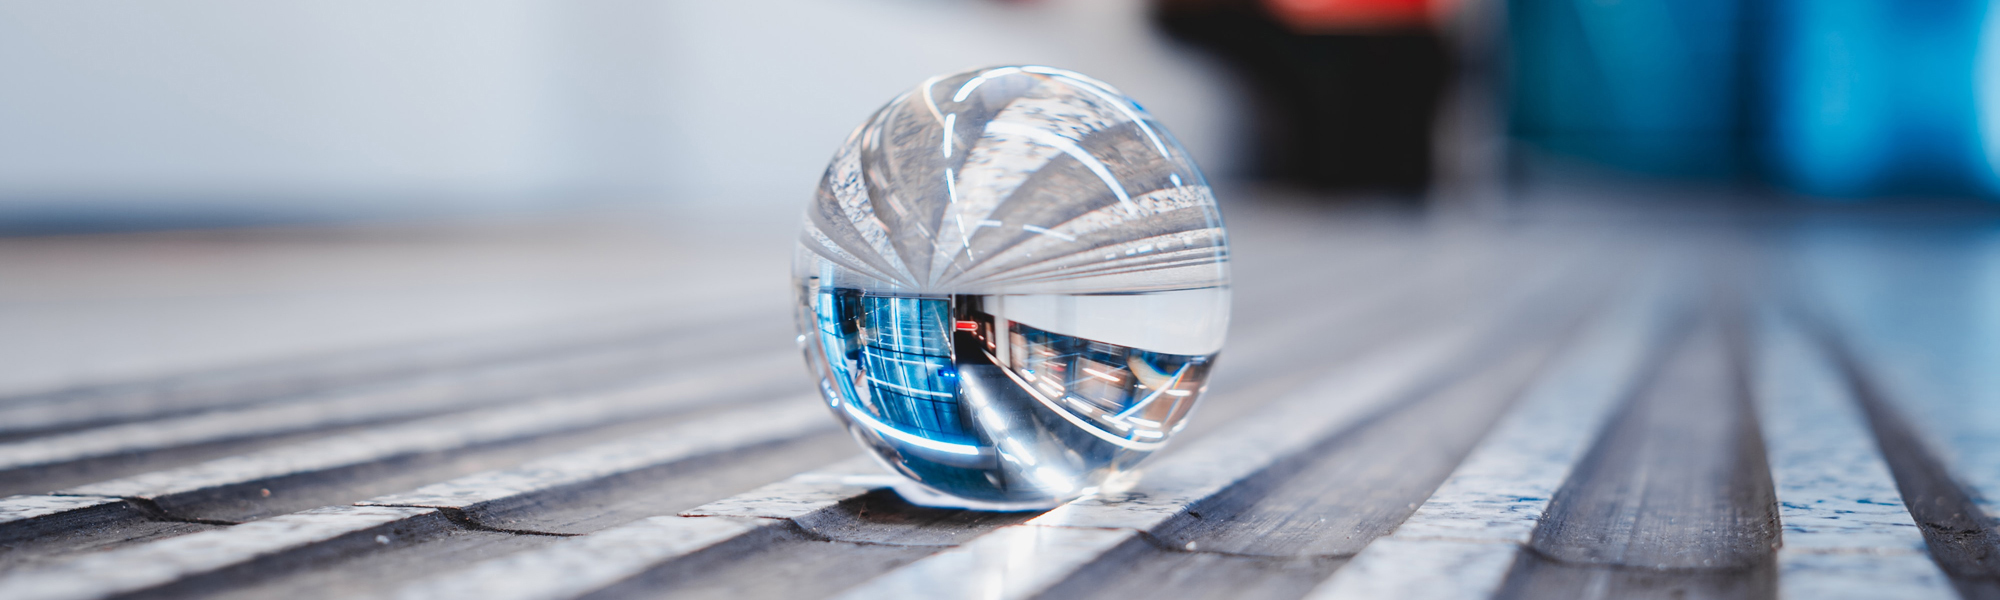 Crystal ball in a subway station. Photo by Rico Reutimann on Unsplash